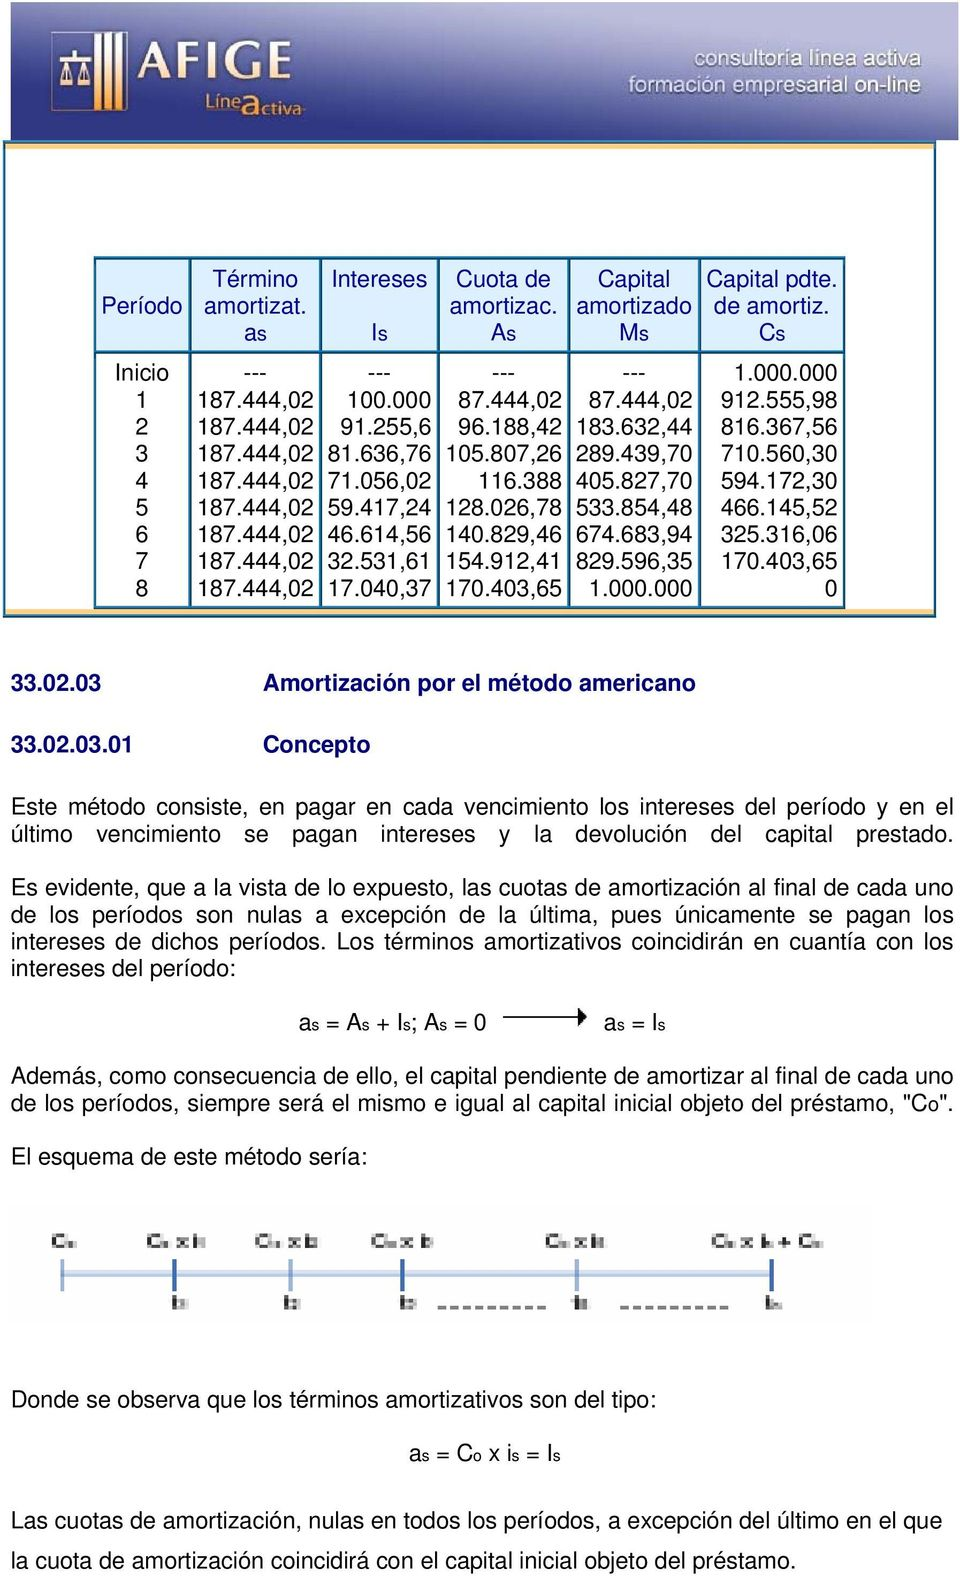 596,35 Capital pdte. de amortiz. Cs 92.555,98 86.367,56 70.560,30 594.72,30 466.45,52 325.36,06 70.403,